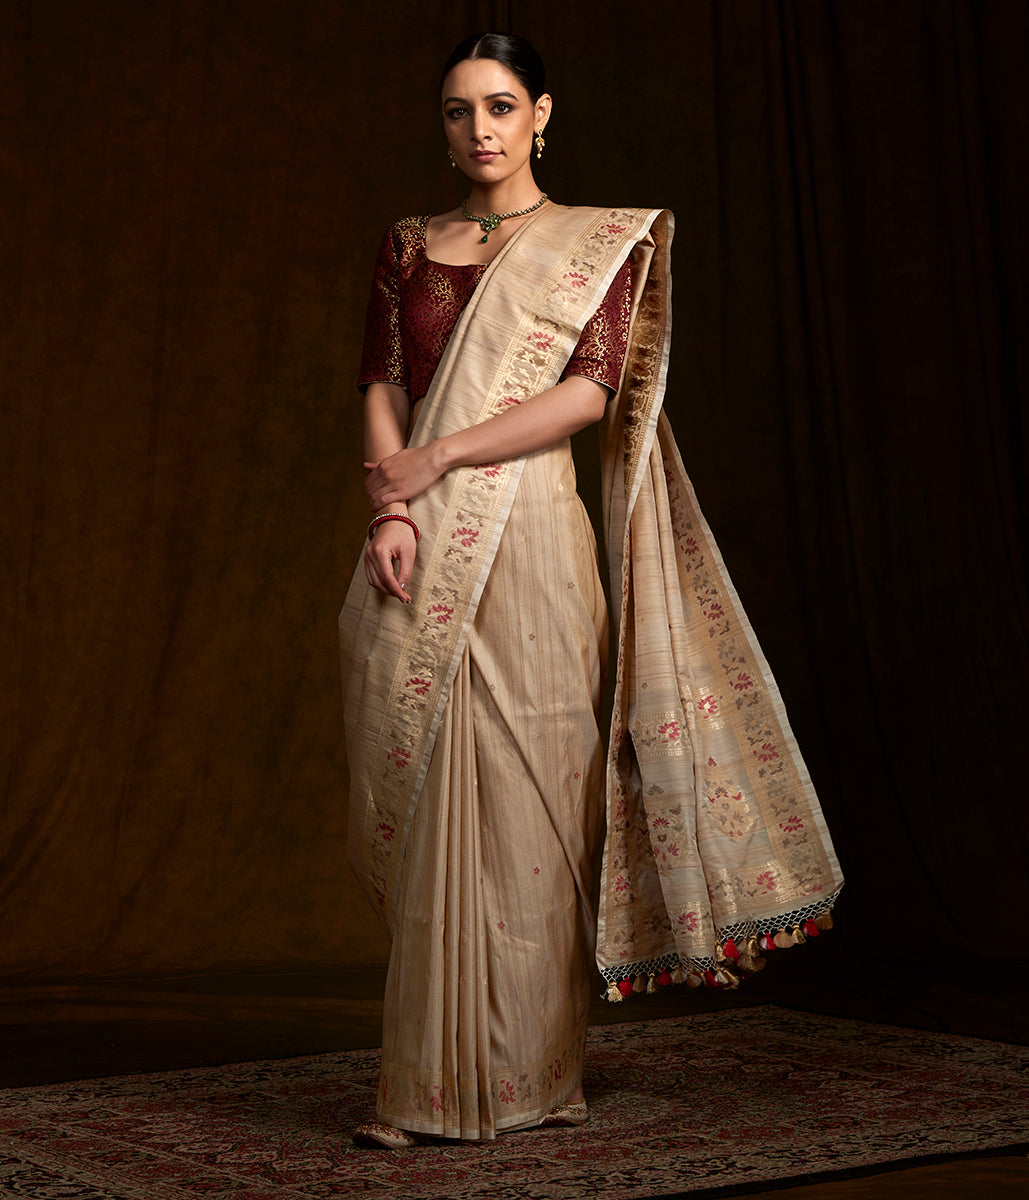 Handwoven Banarasi Tusser silk saree with kadhwa booti and meenakari border